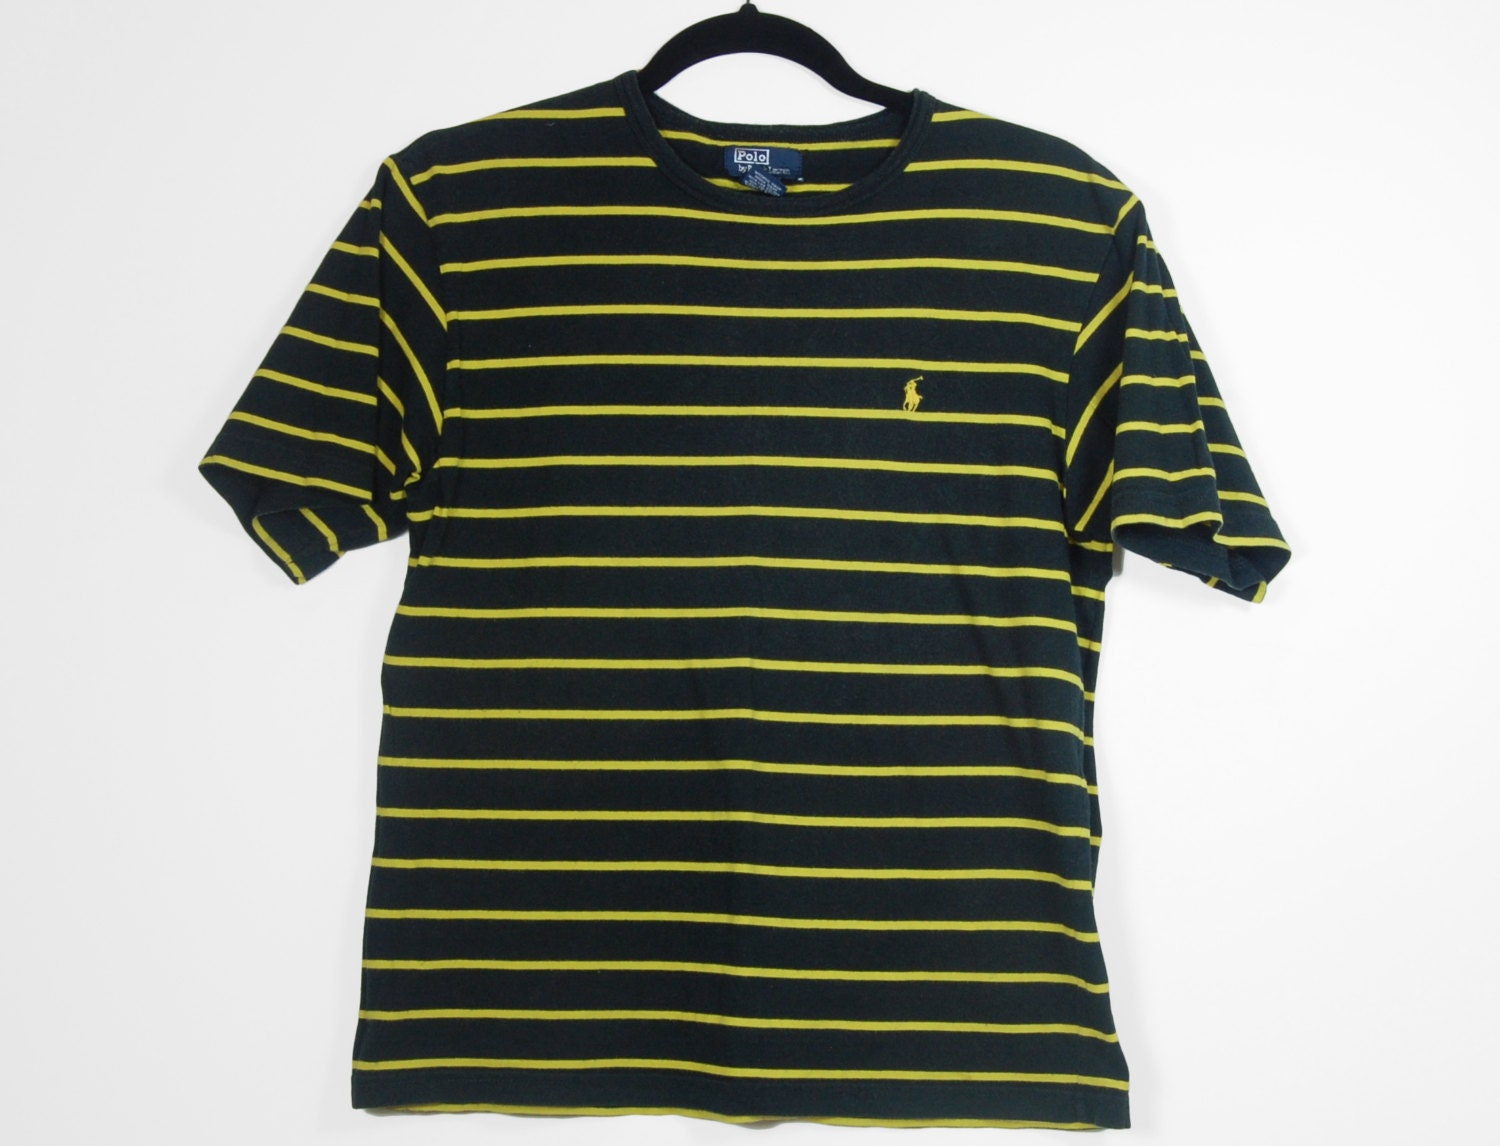 90 39 s polo ralph lauren black and yellow striped t shirt